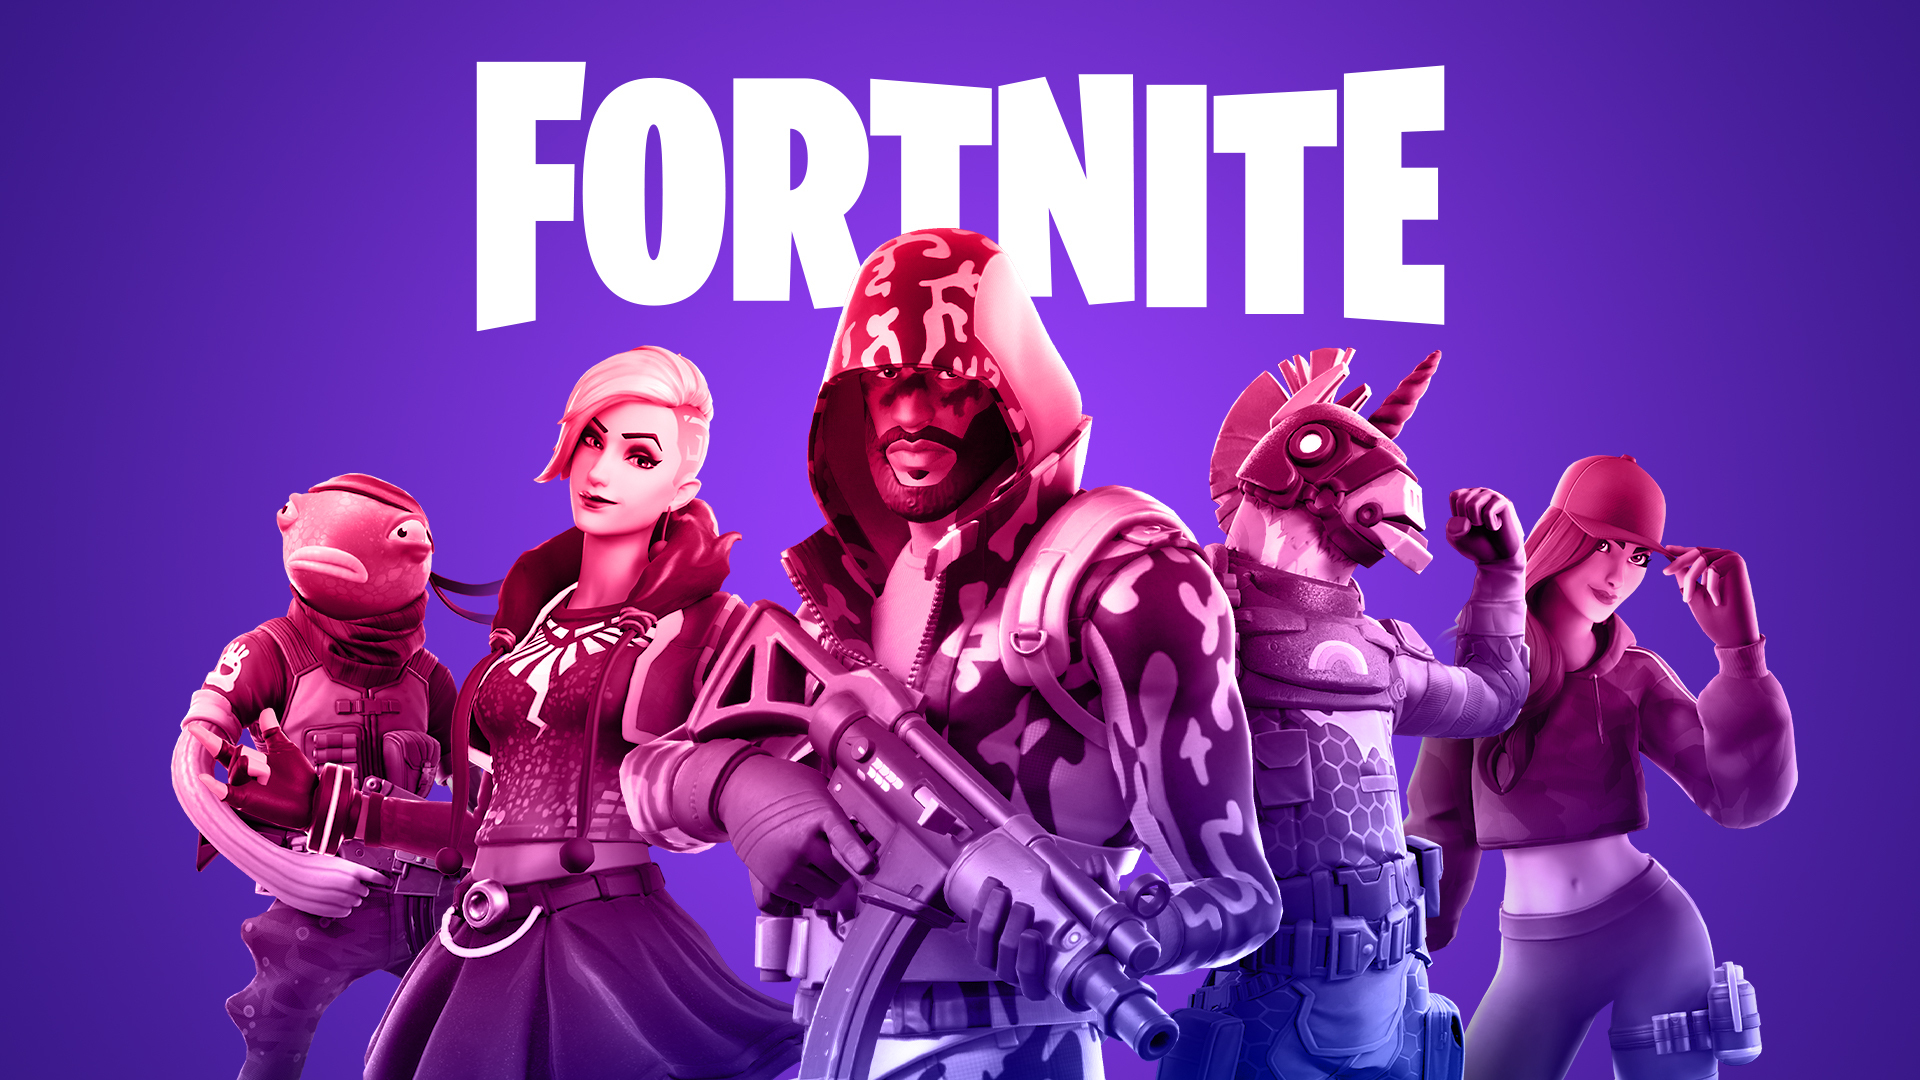 DreamHack Online Open Featuring Fortnite - Download DreamHack Online Open Featuring Fortnite for FREE - Free Cheats for Games